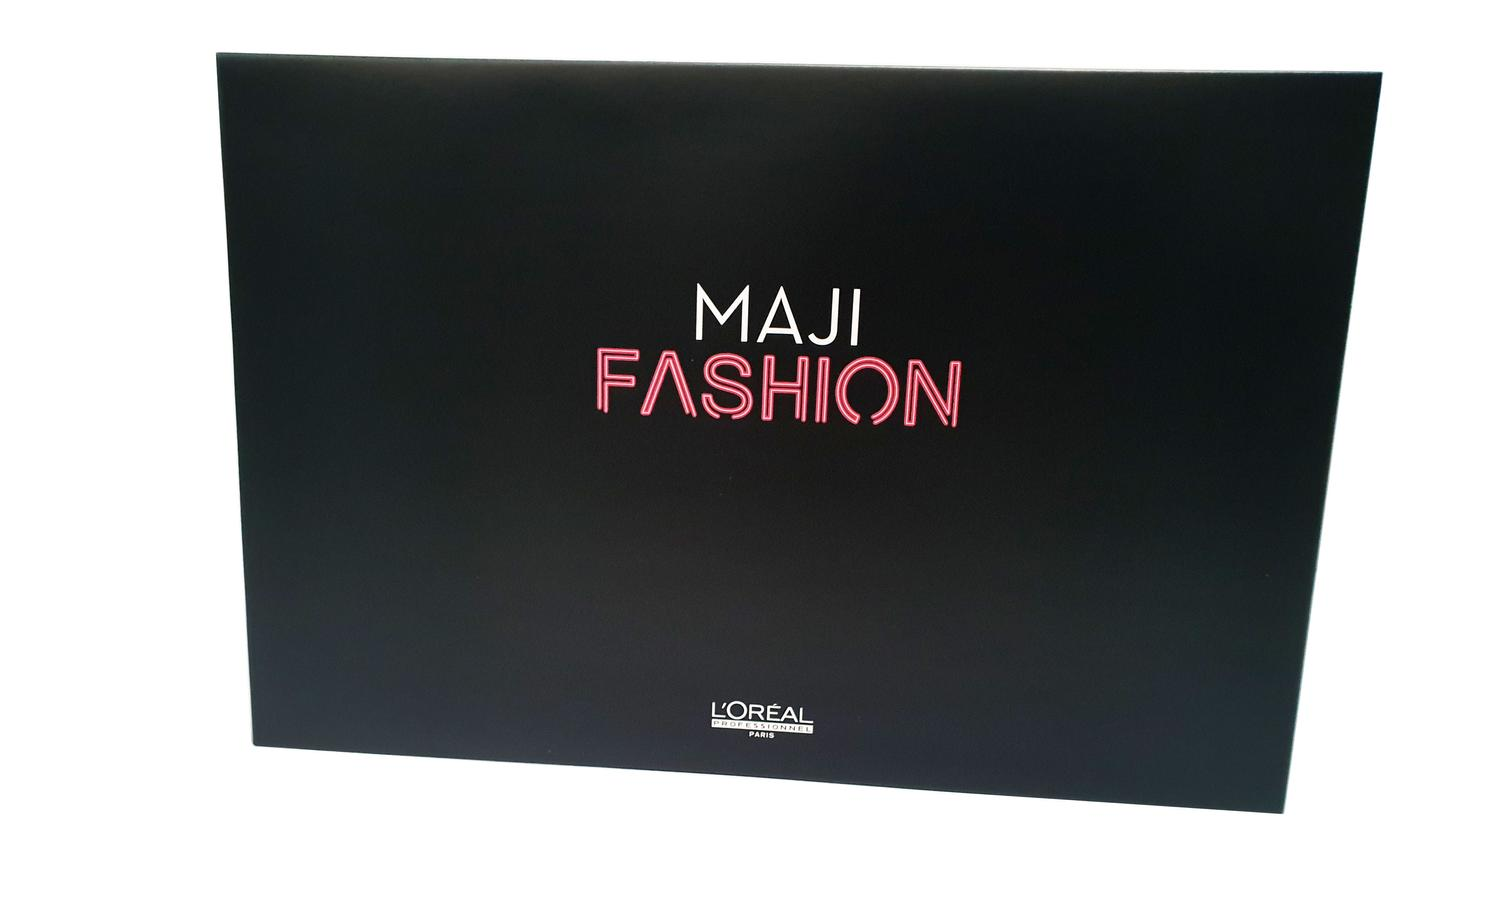 Maji Fashion L'Oréal